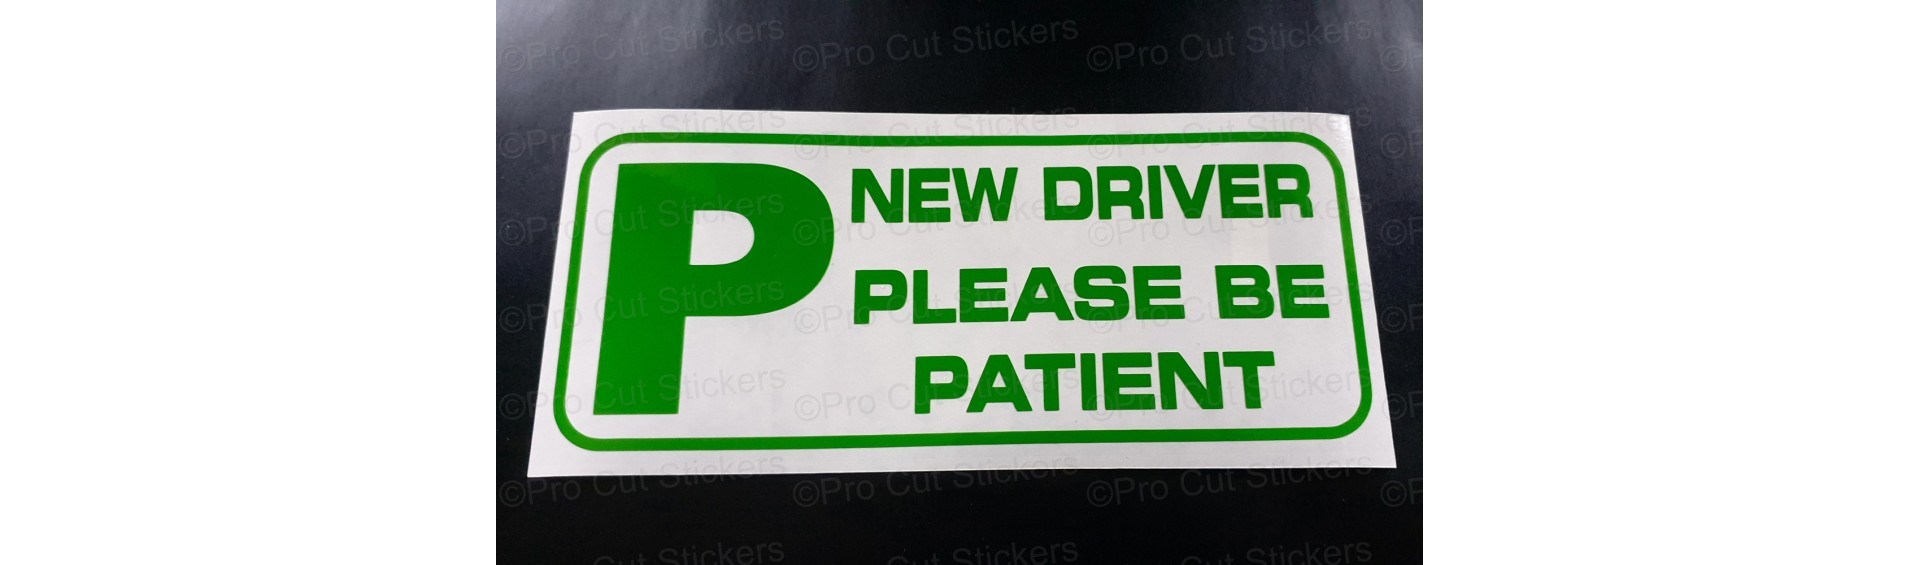 New Driver Stickers